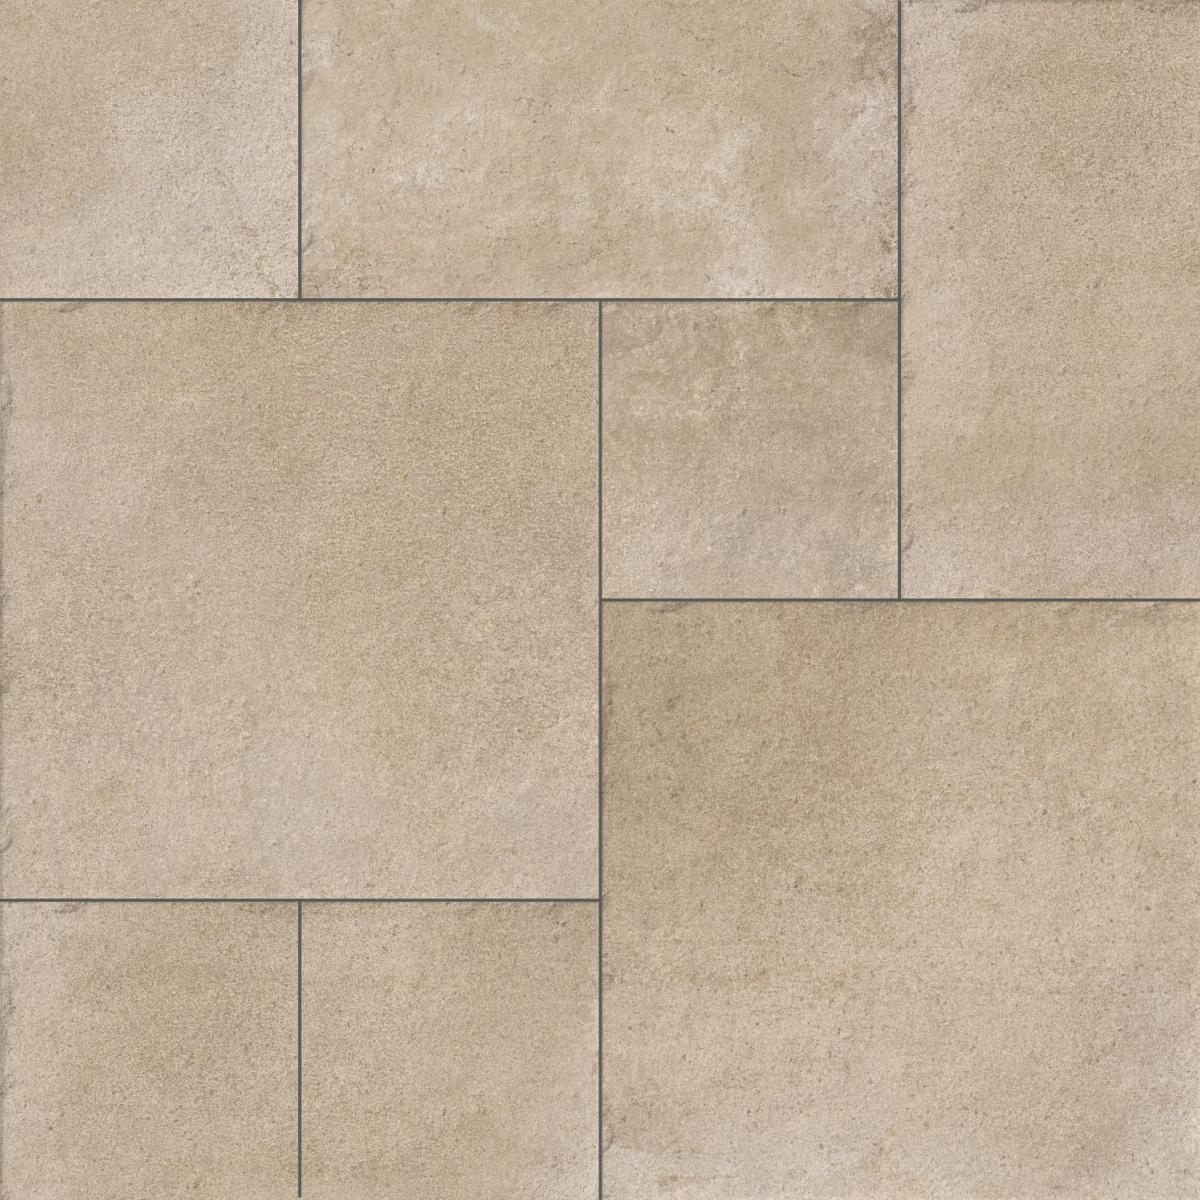 Codicer Arizona Stone Floor Tile Multisize Tiles Ahead